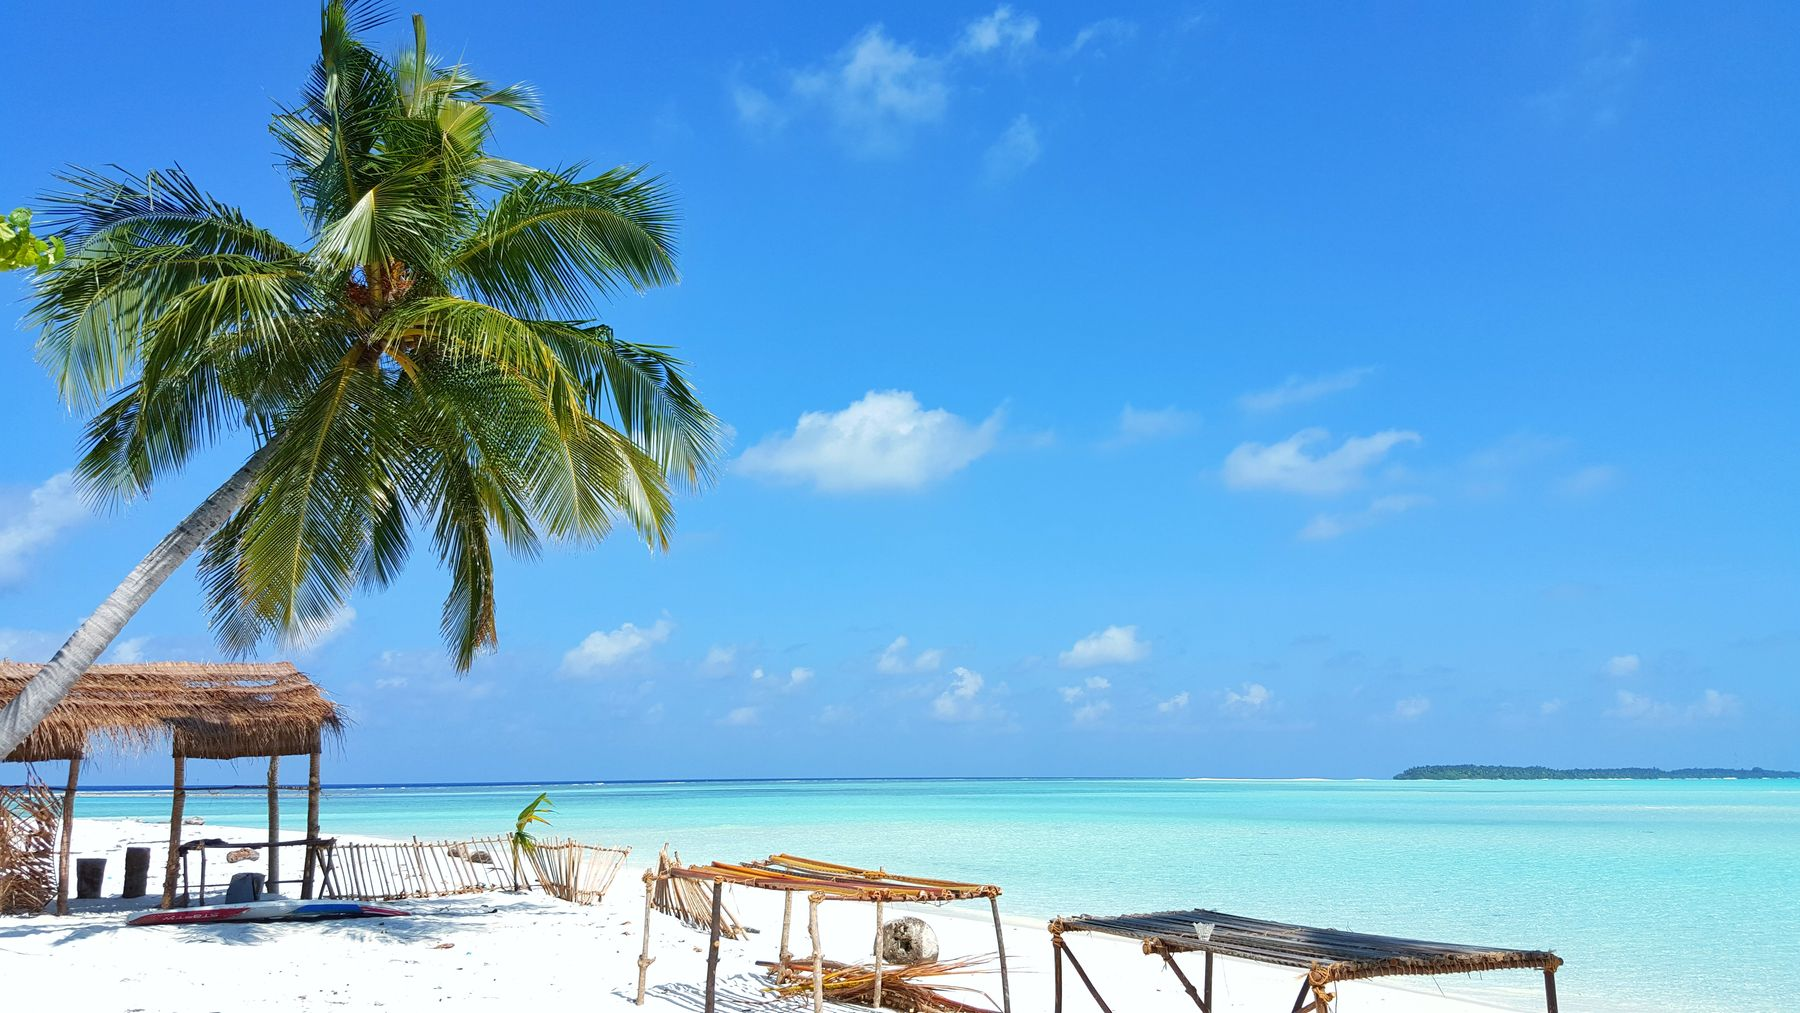 The best beaches in the Maldives have soft white sand and shallow turrquoise waters